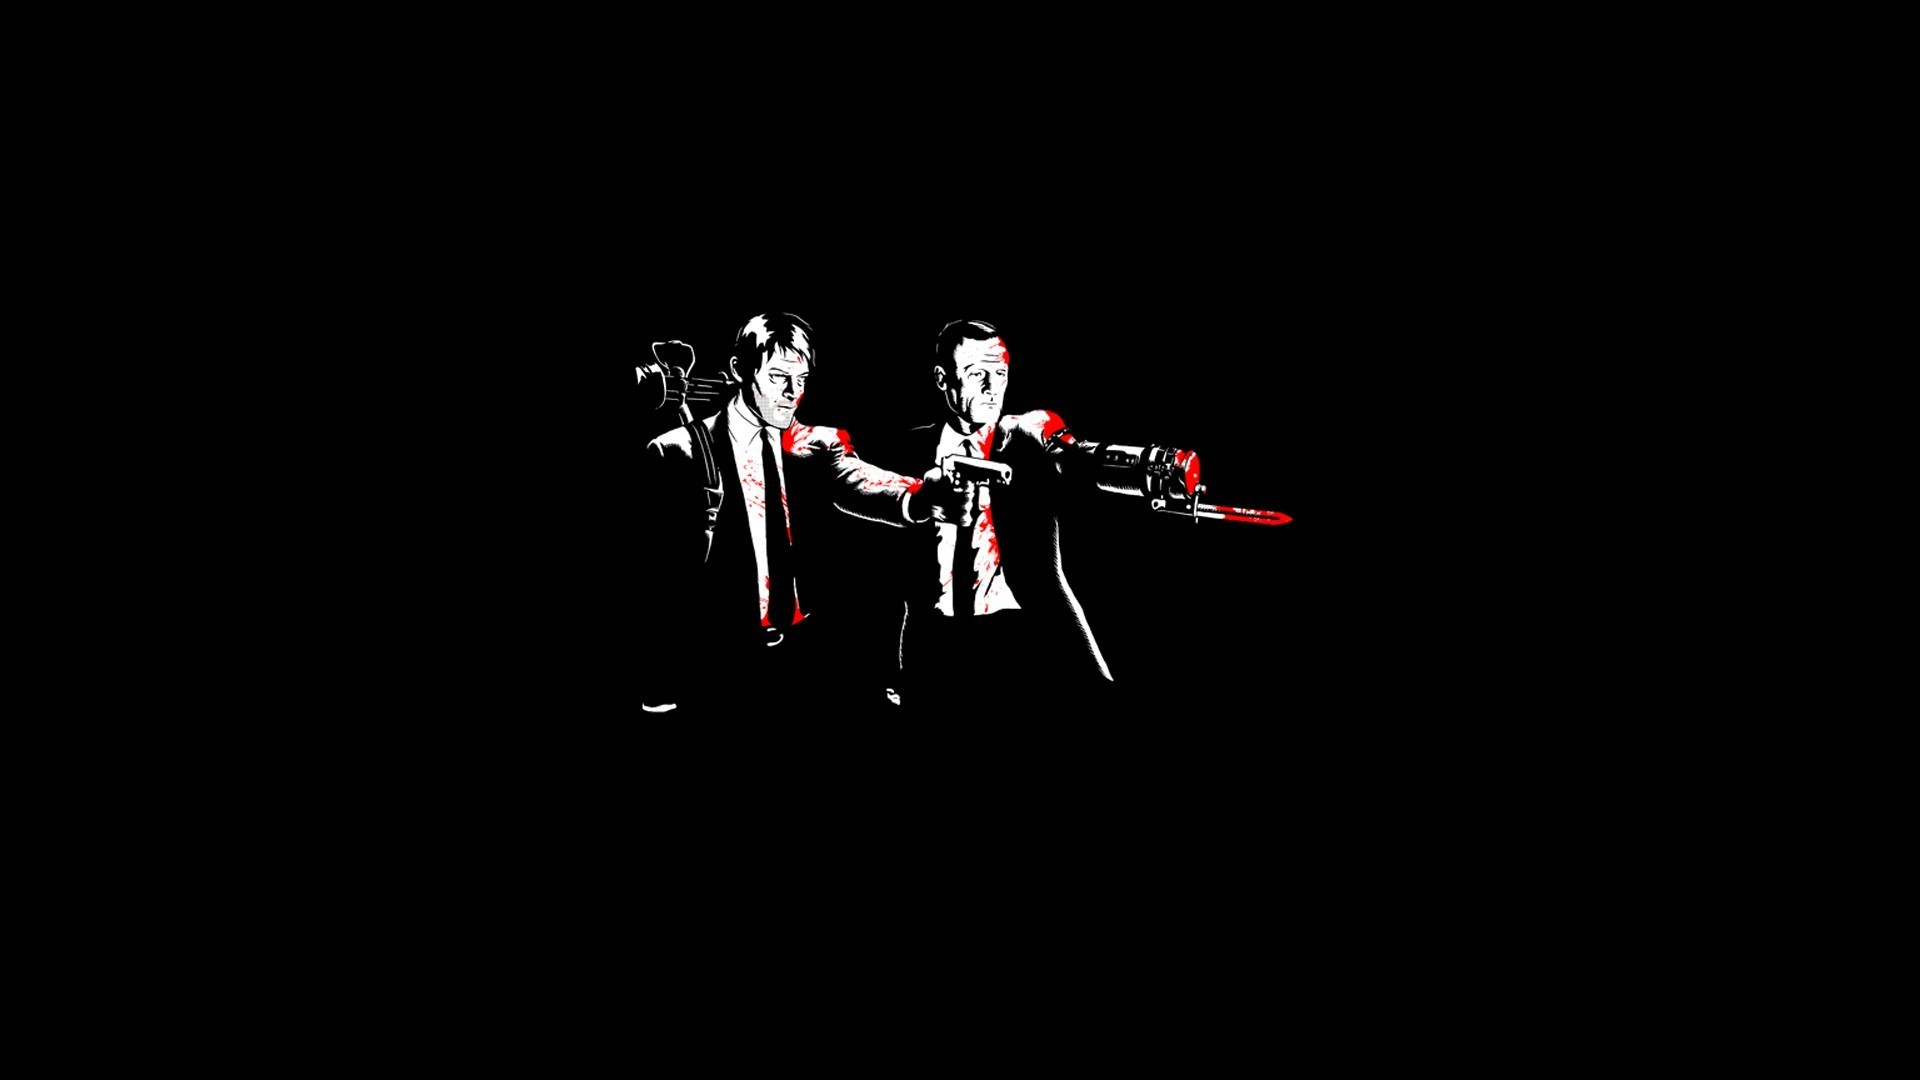 Free Download Pulp Fiction Walking Dead Crossover Wallpapers Hd 485238 1920x1080 For Your Desktop Mobile Tablet Explore 46 Pulp Fiction Wallpaper Hd Star Wars Pulp Fiction Wallpaper Fiction Wallpapers